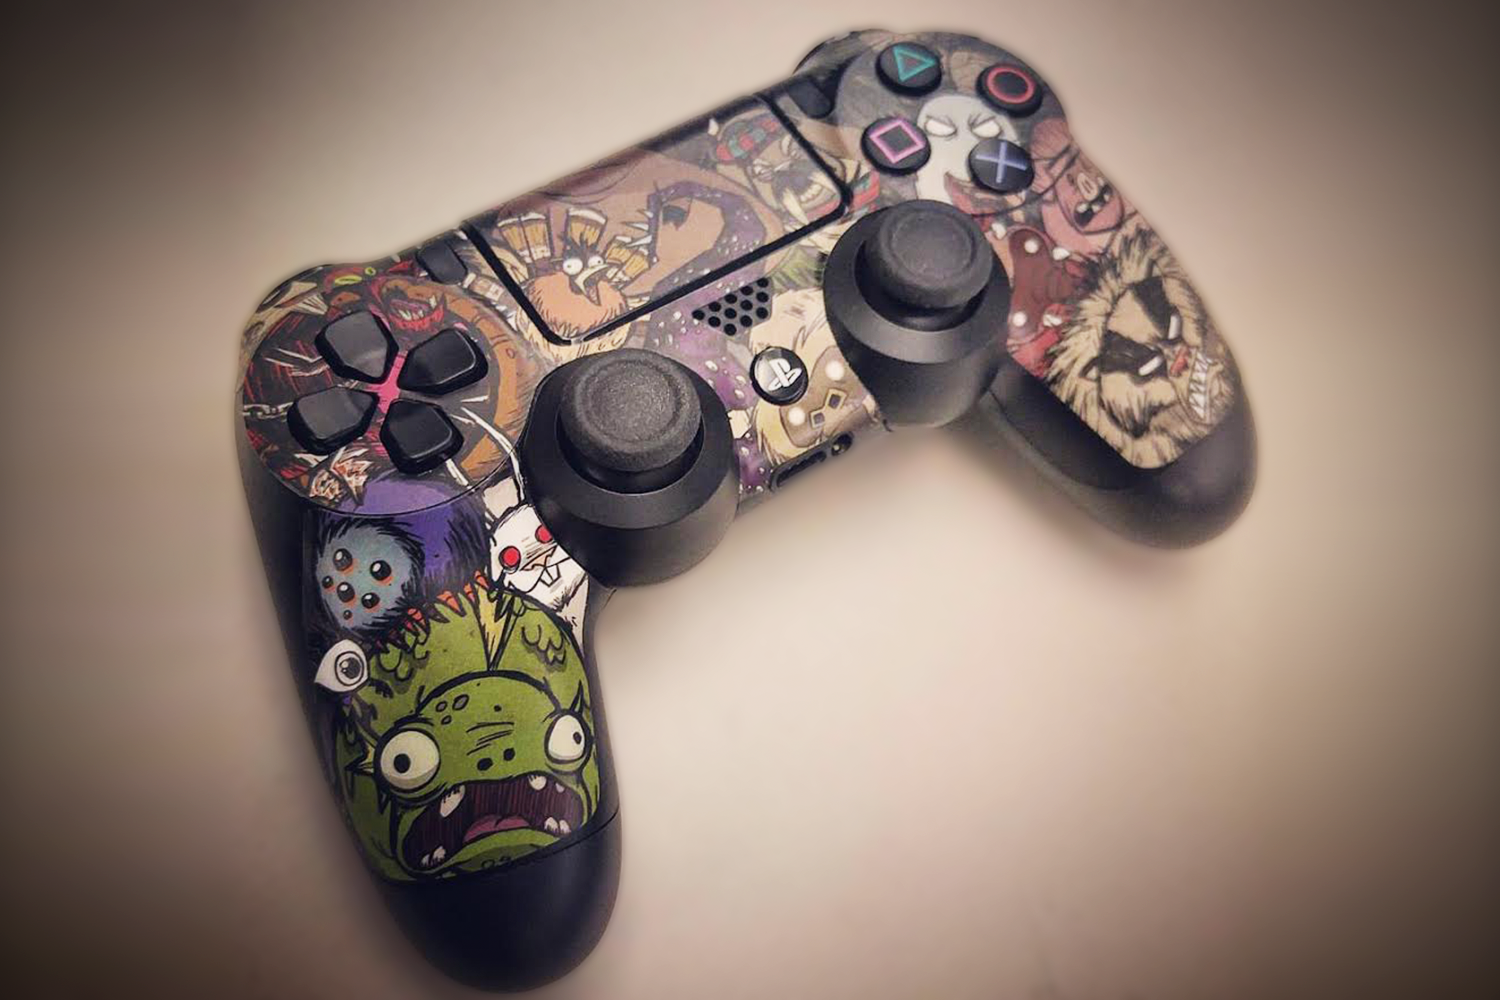 Don't Starve: Controller Skin (Xbox | PS4 | Steam)